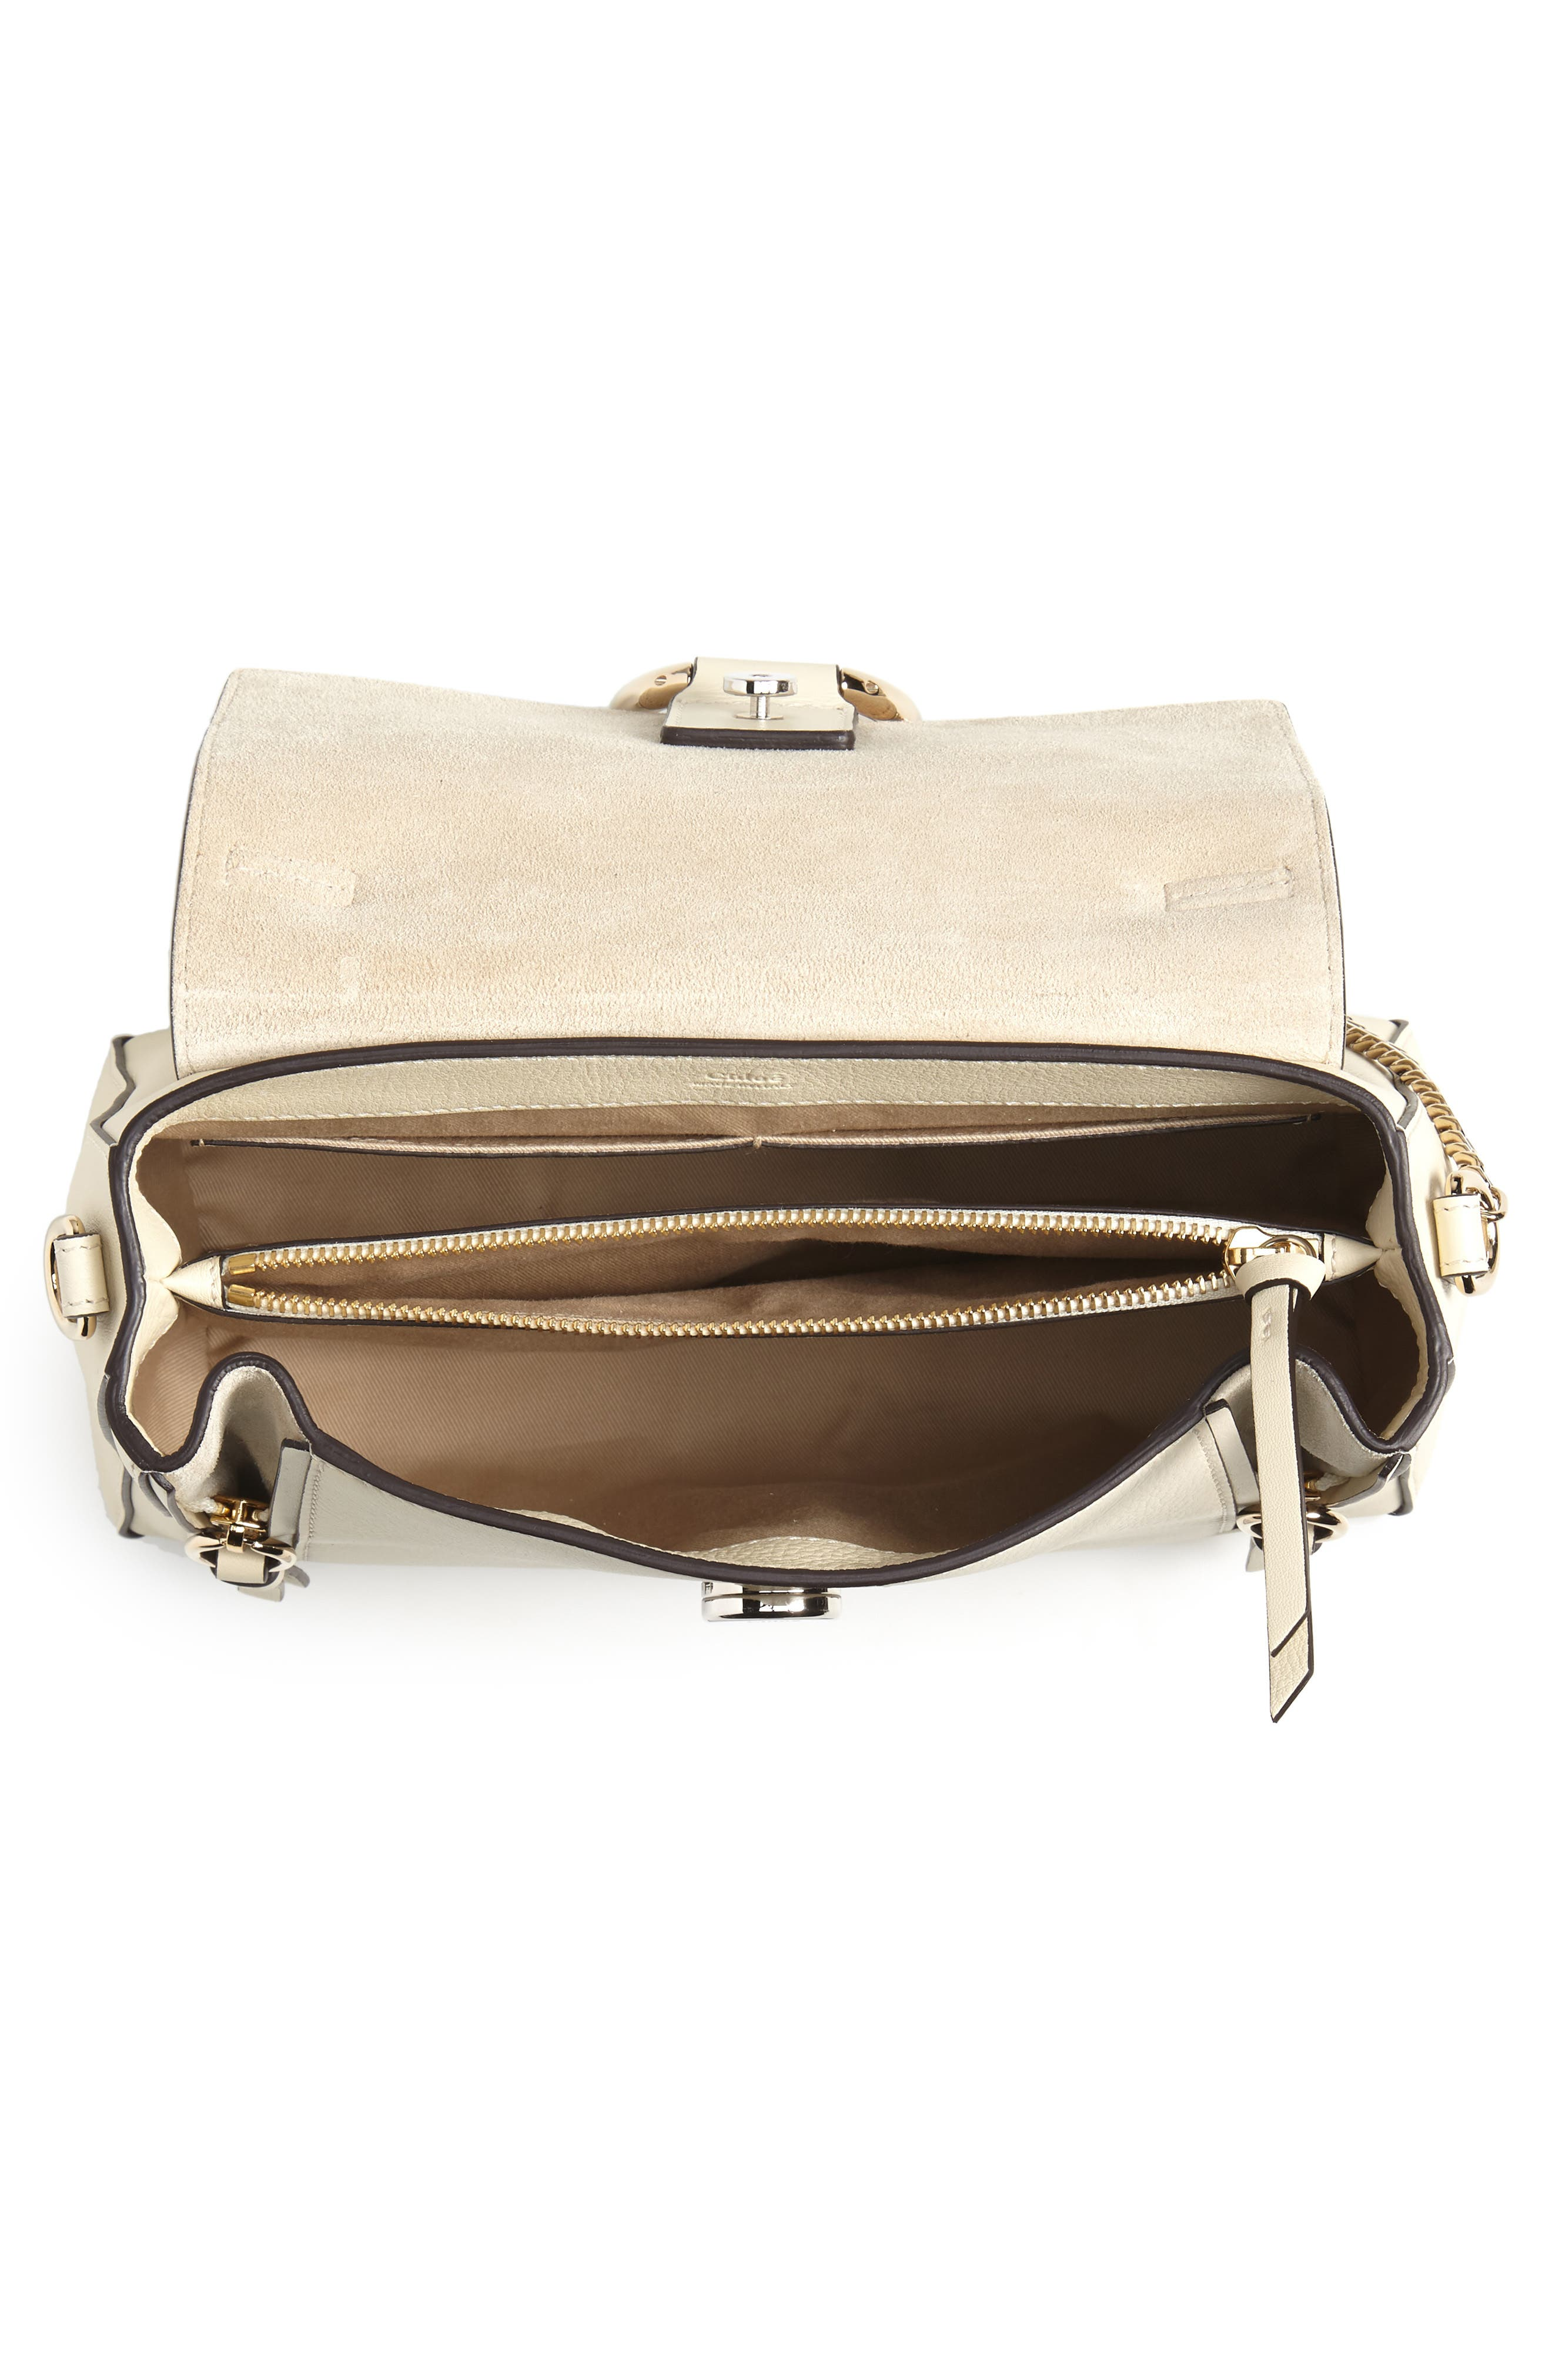 CHLOÉ, Small Faye Day Leather Shoulder Bag, Alternate thumbnail 4, color, OFF WHITE